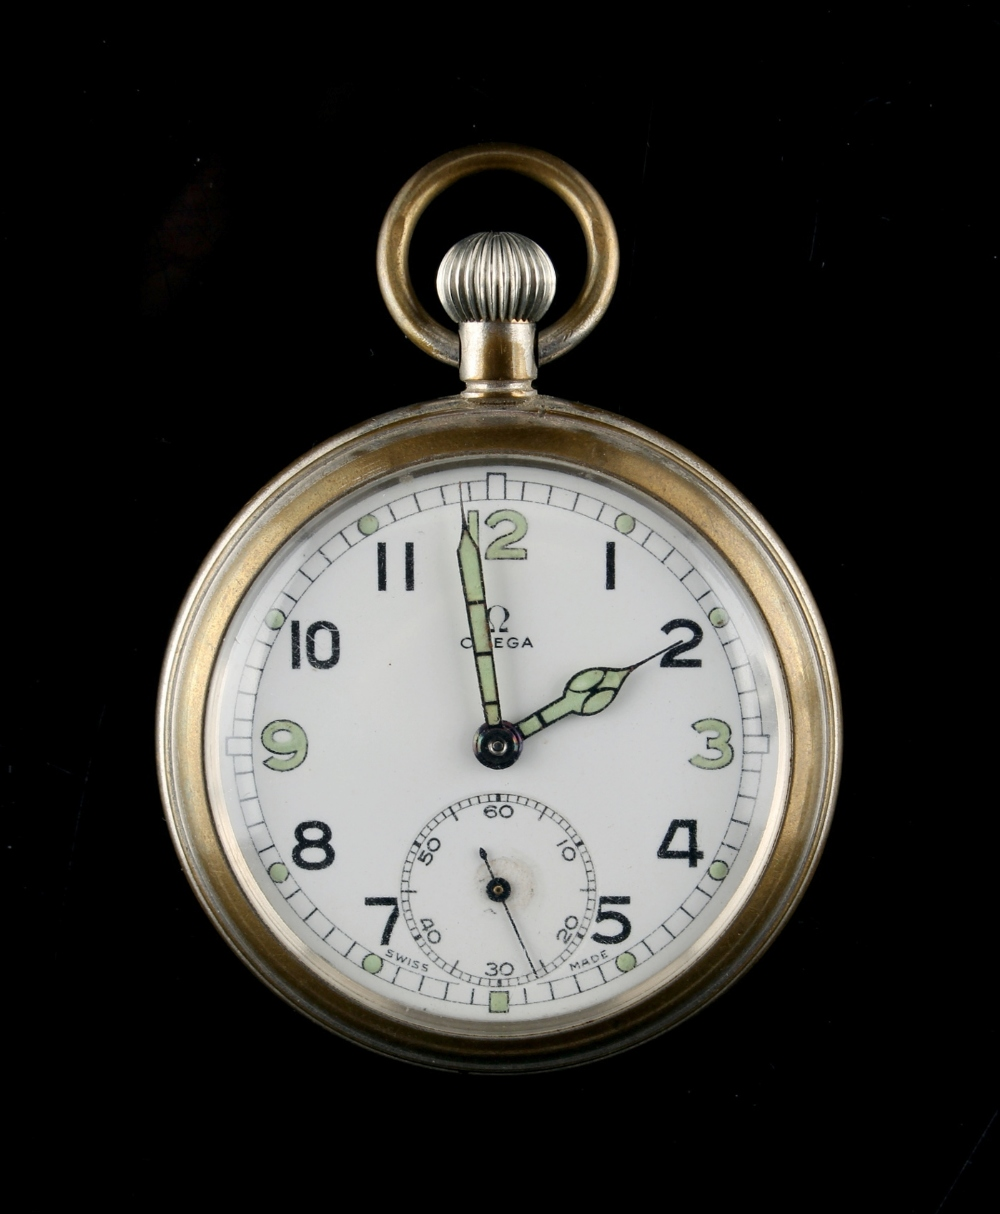 Property of a gentleman - an Omega military pocket watch, with broad arrow mark above G.S.T.P. and